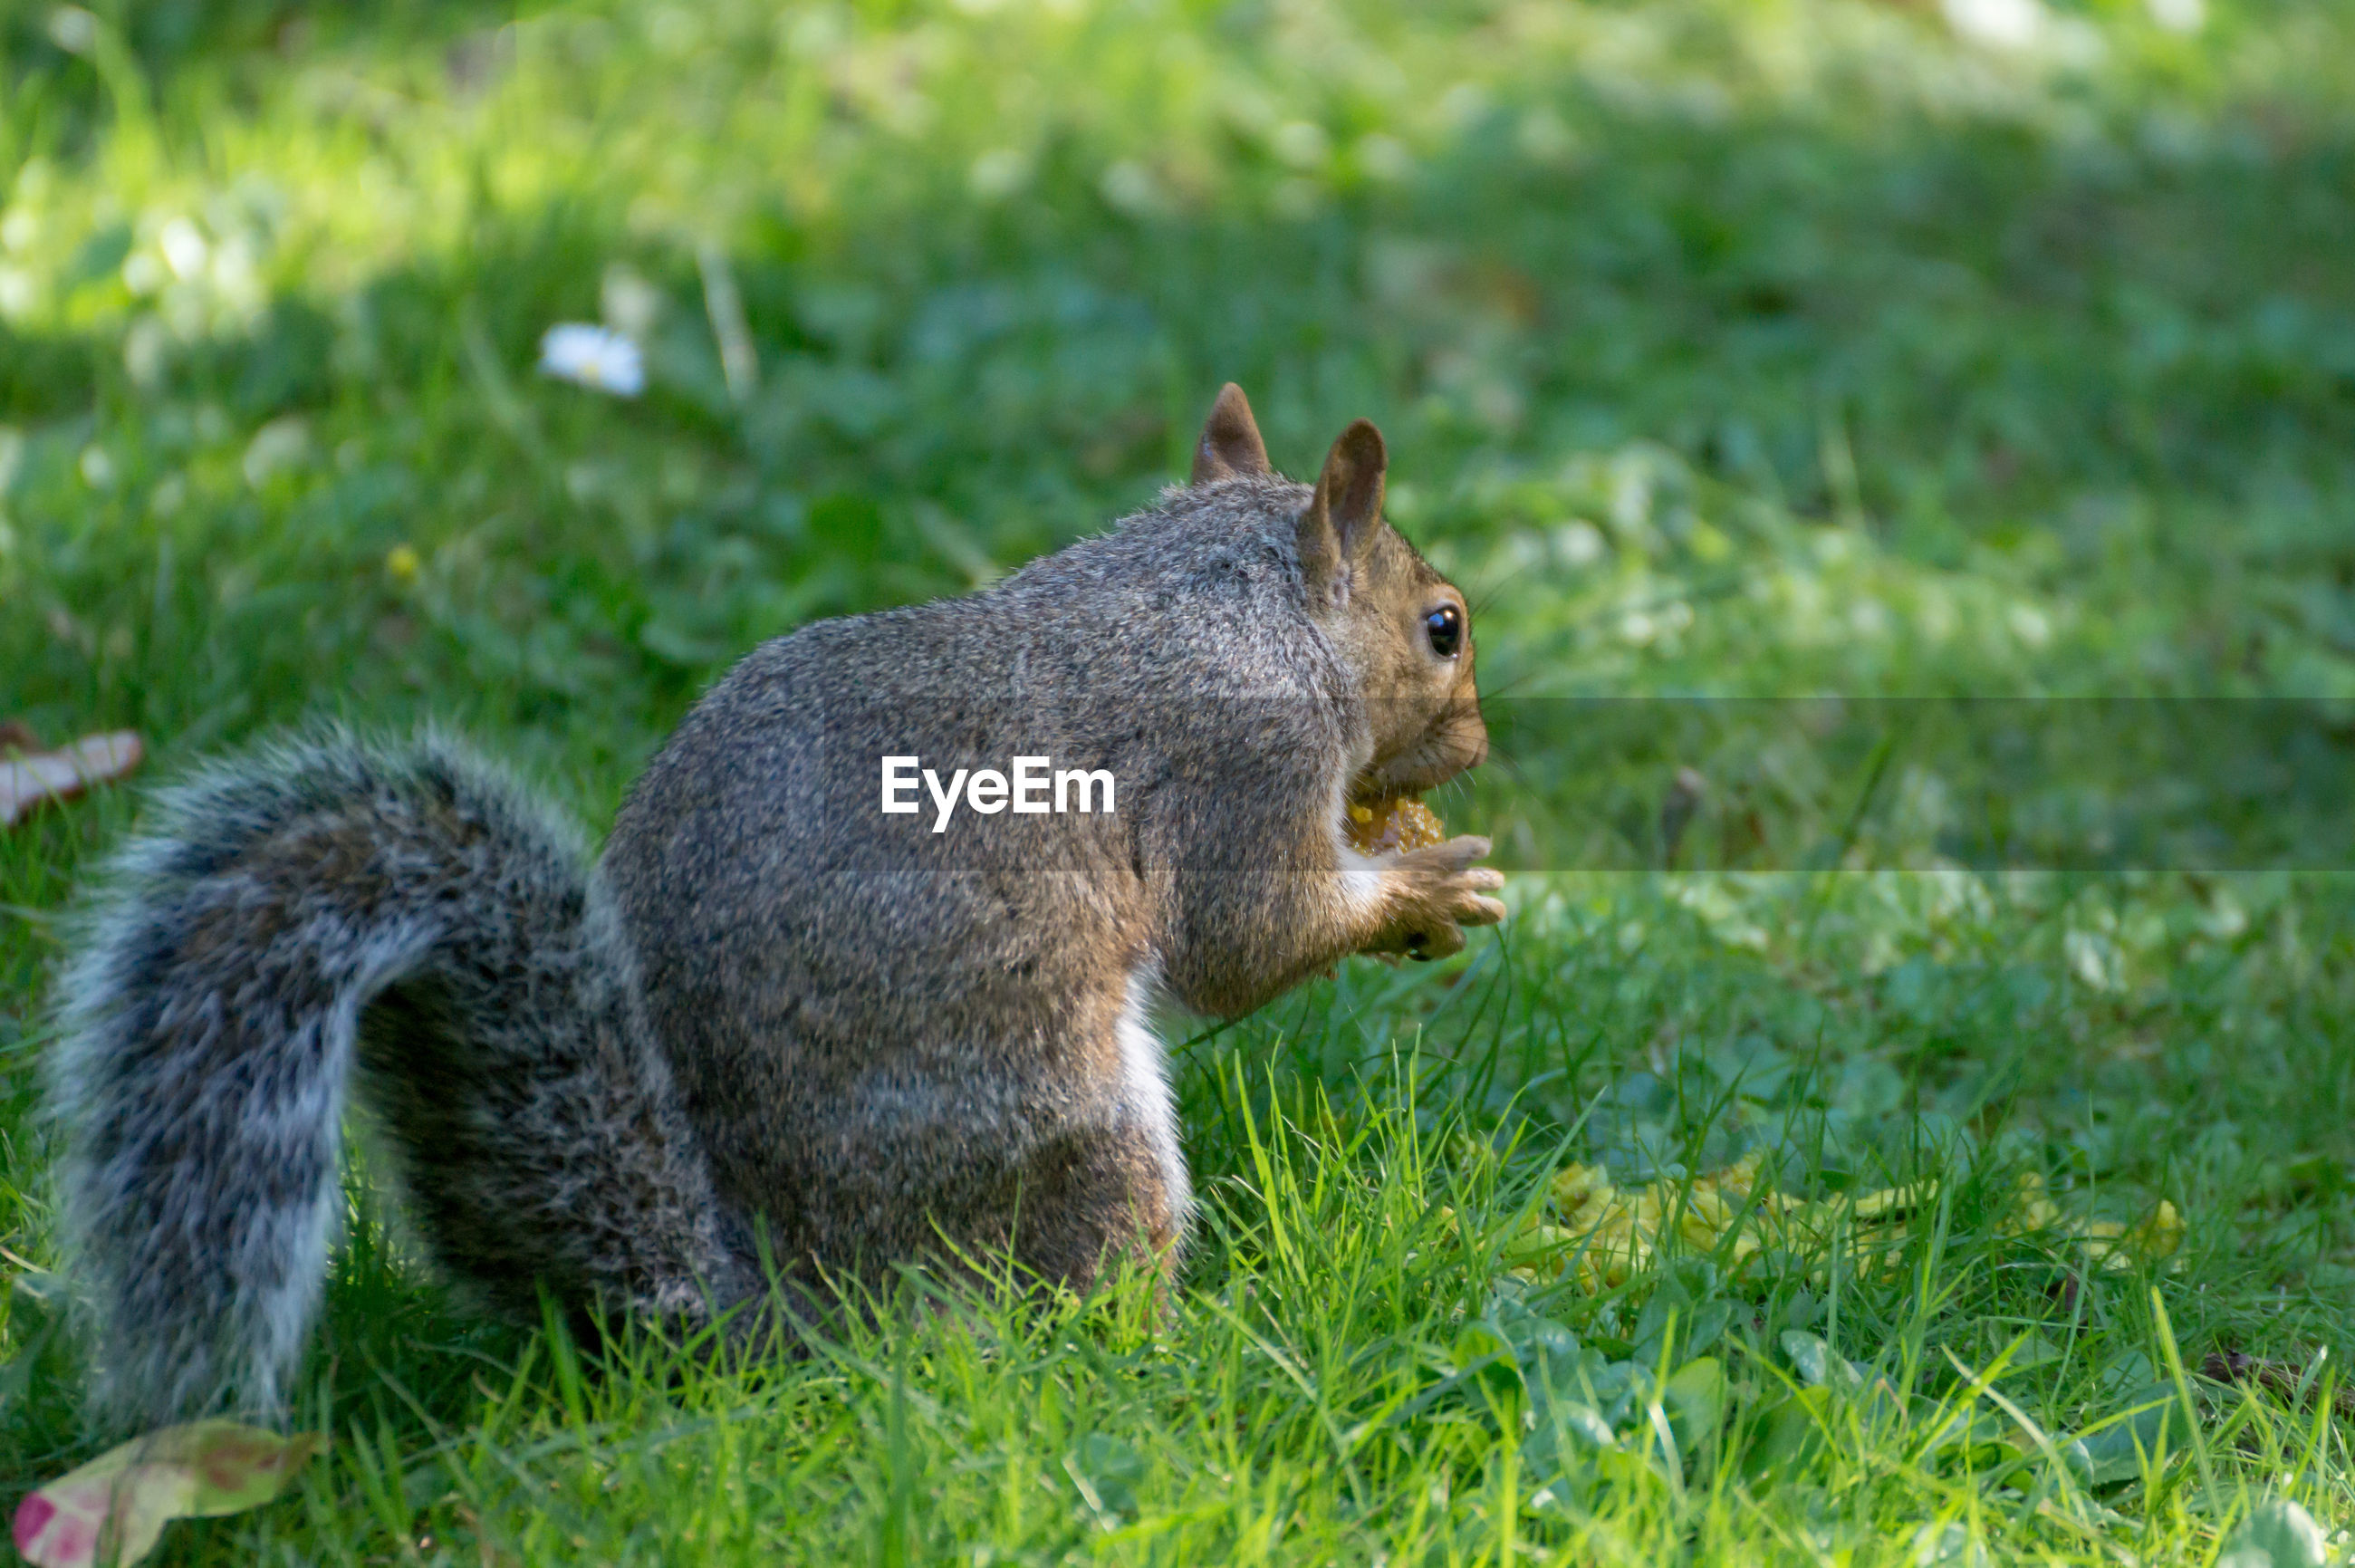 Squirrel eating food on field